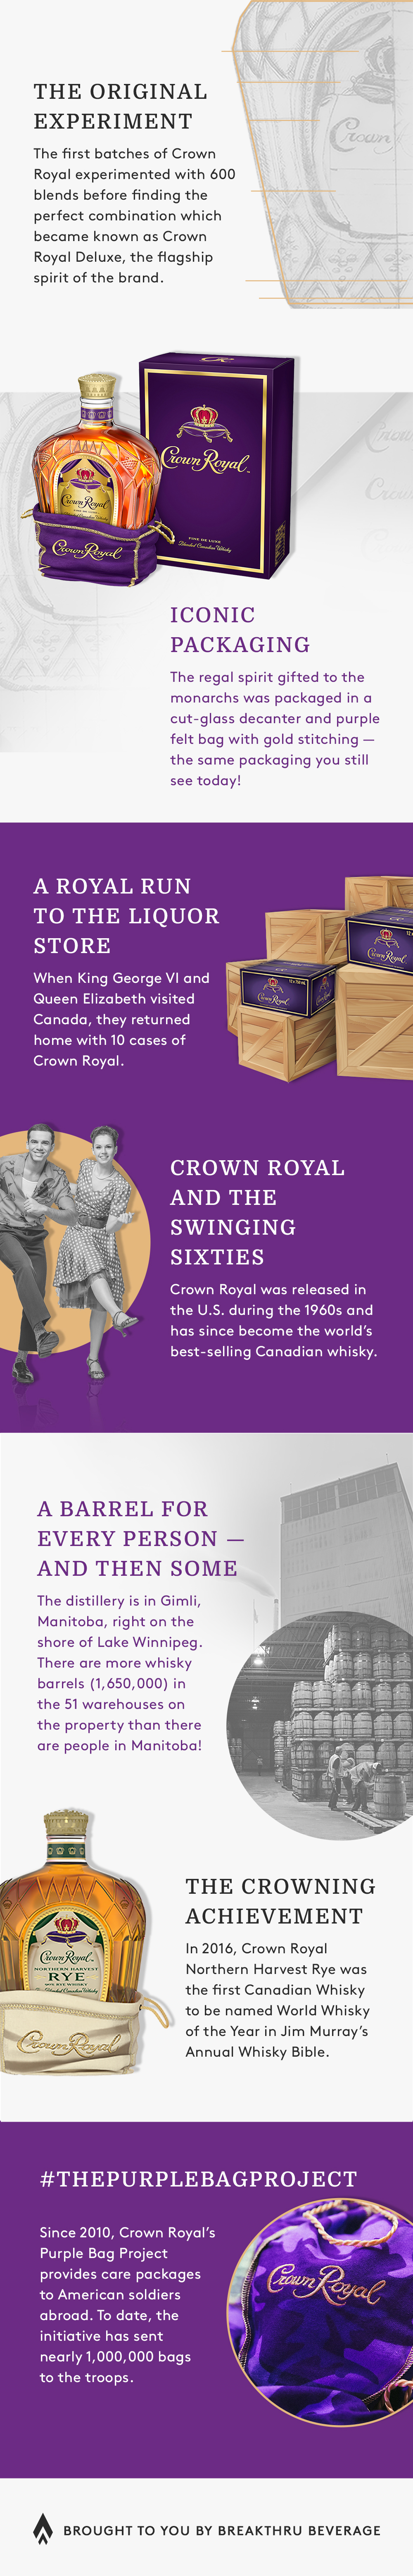 SYTYK Crown Royal Infographic